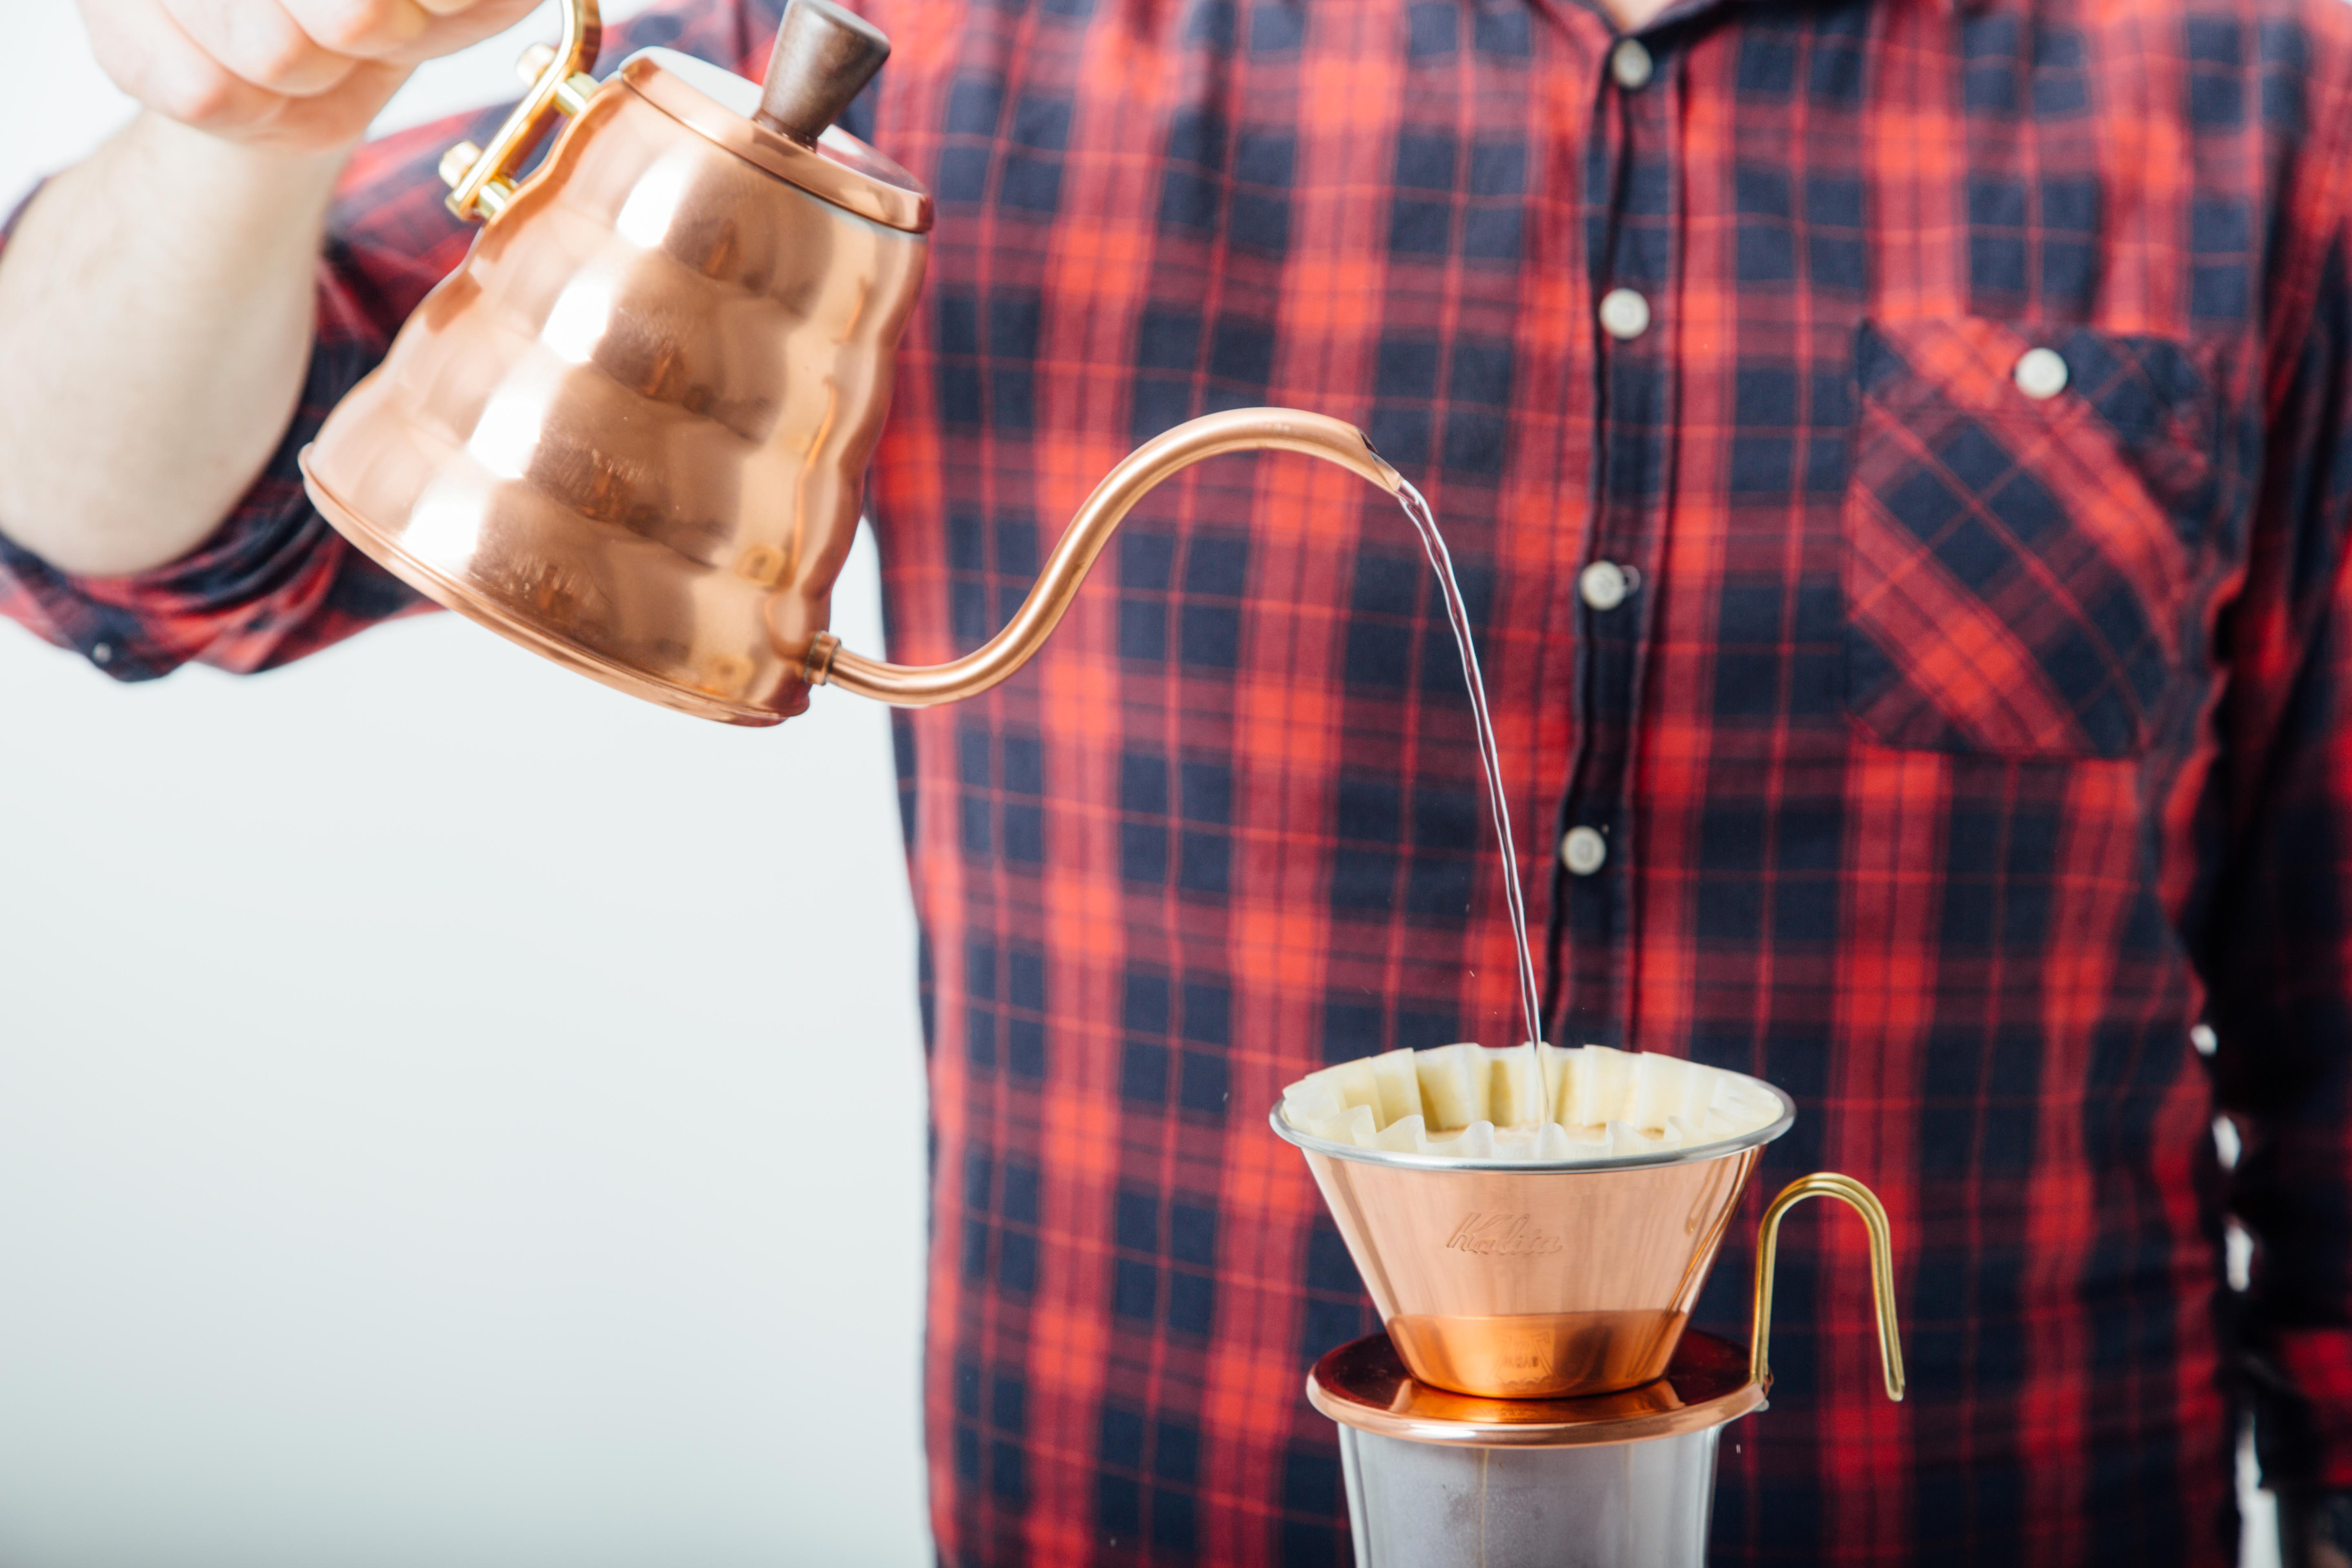 Brewing with a copper pour over set